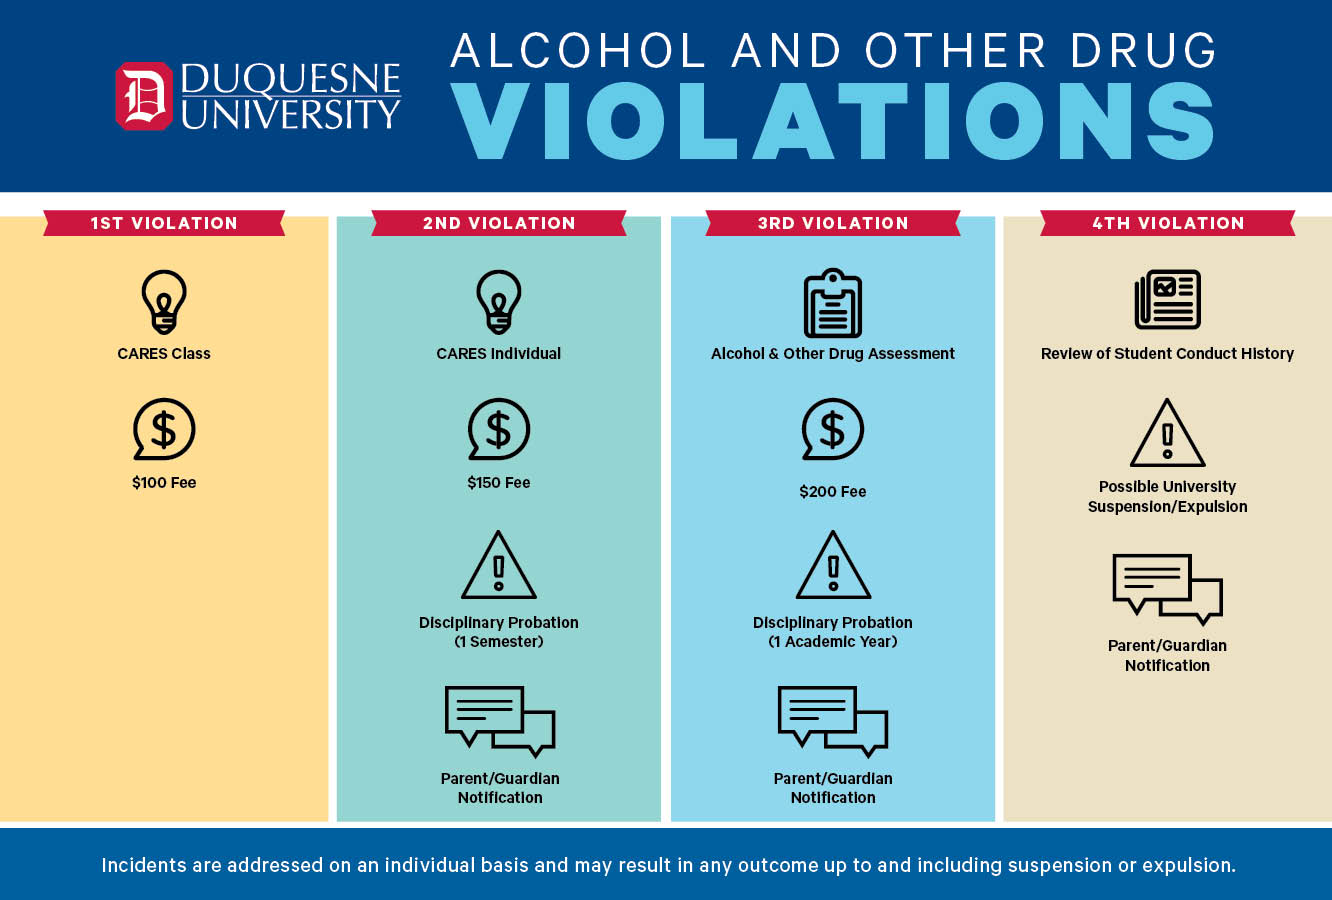 An infographic that explains the consequences for violating the Duquesne University Alcohol and Drugs Policy